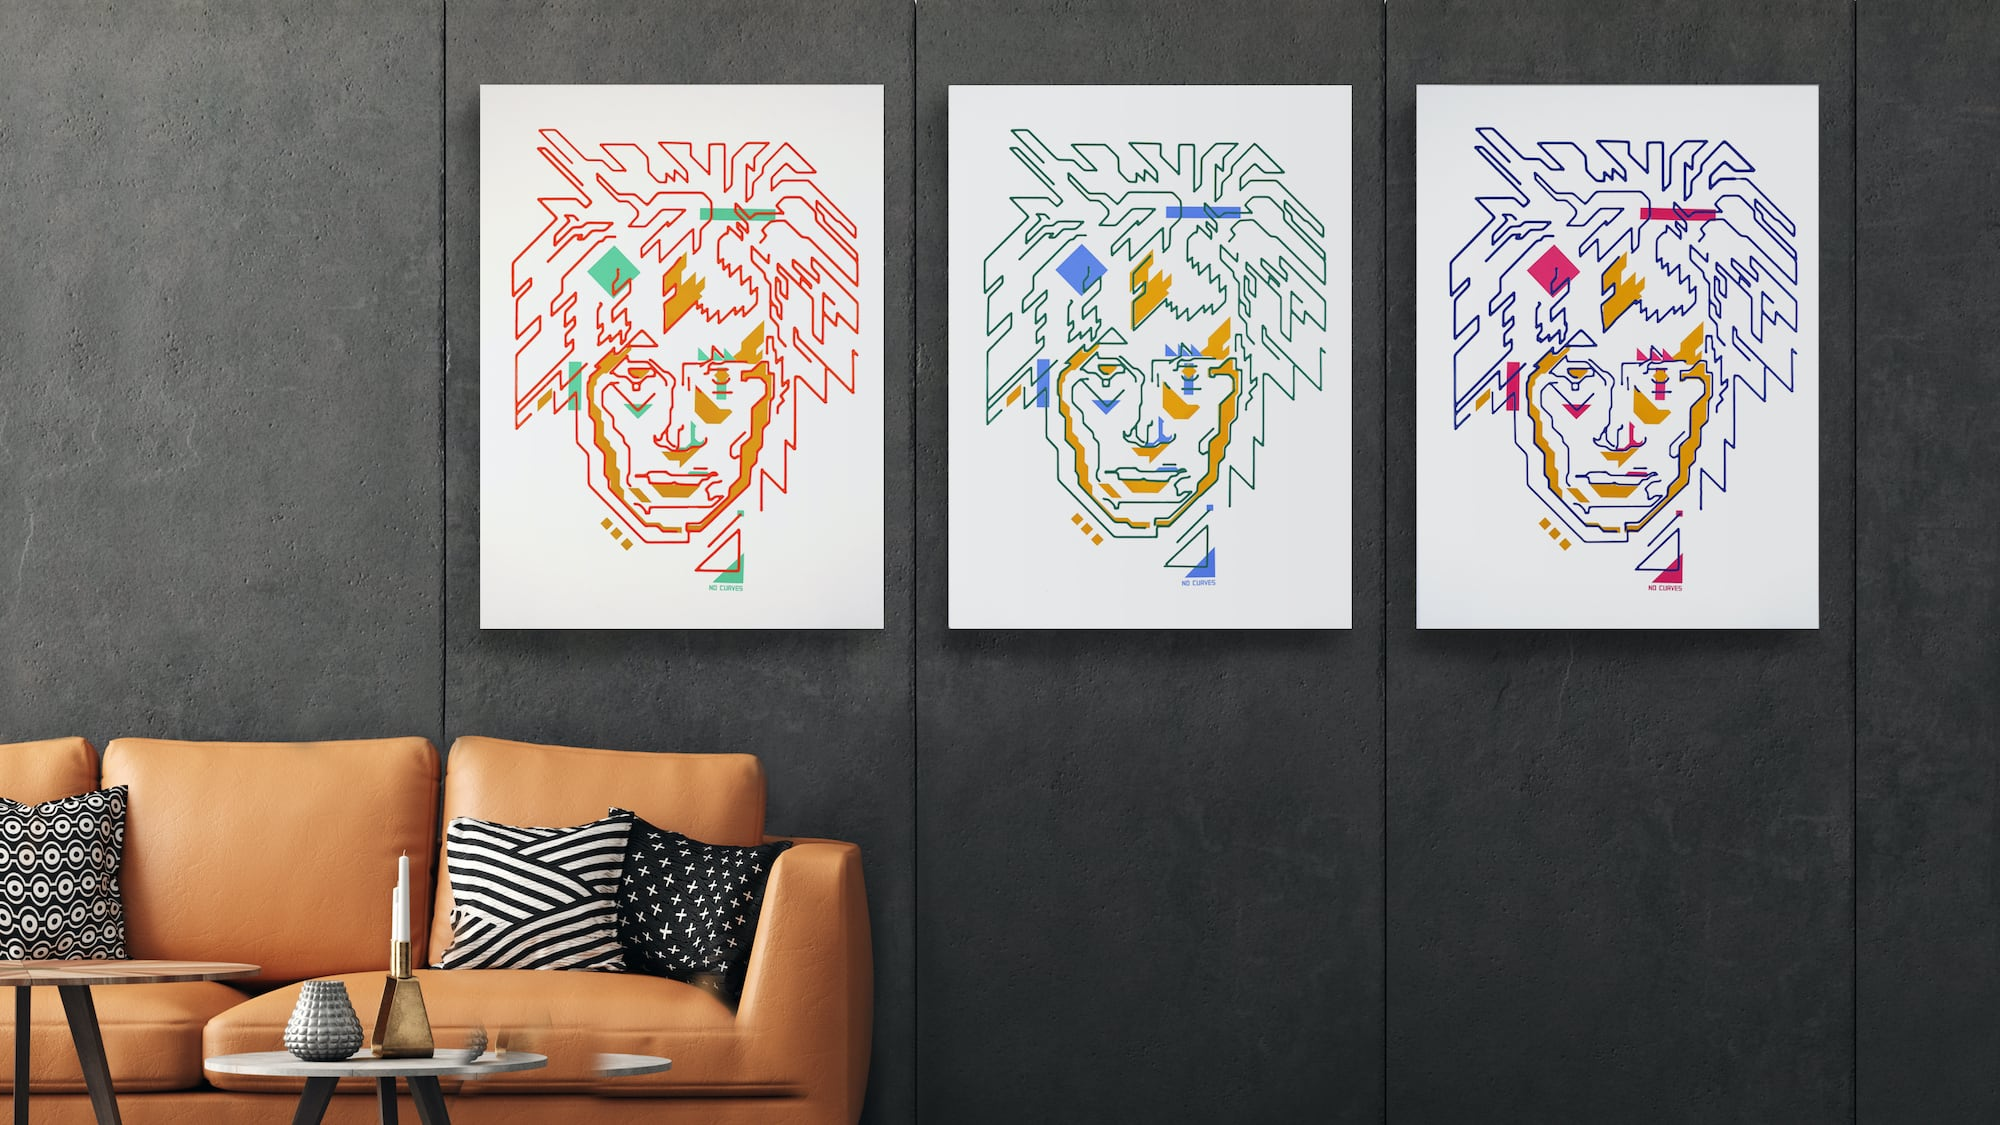 Proximars Painting Collection robot-made art creatively combines human and tech designs